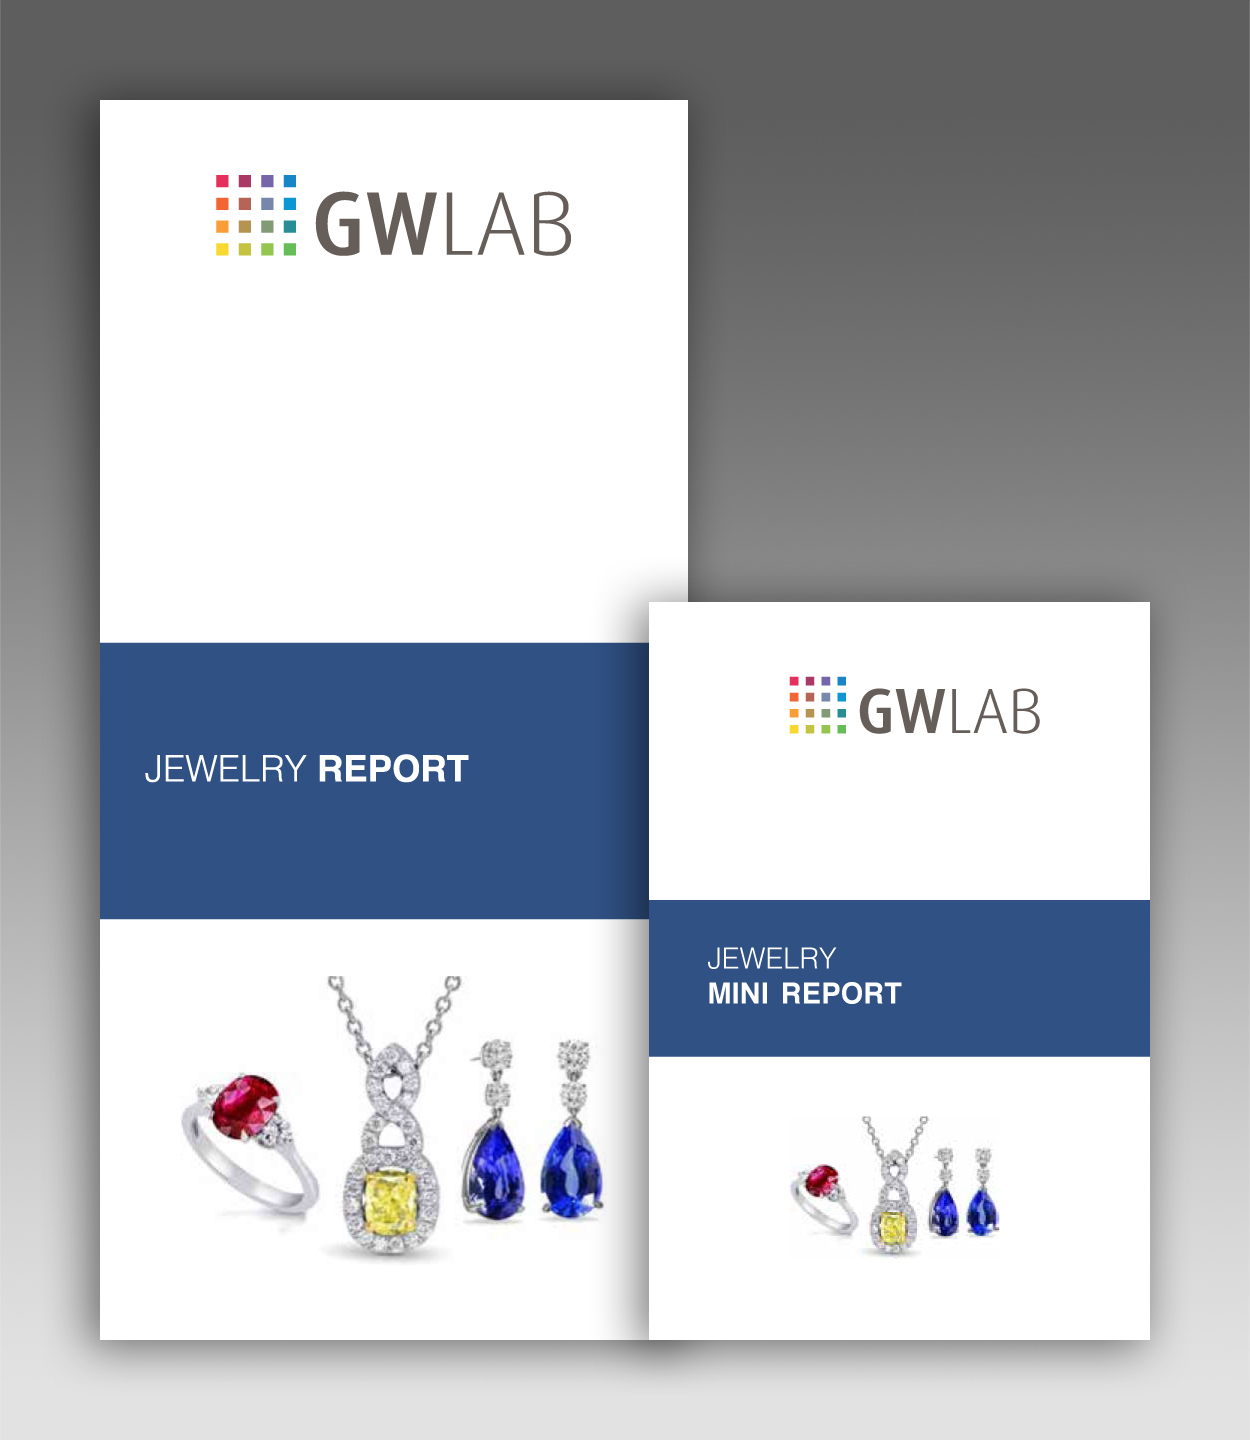 GWLAB Jewelry Report - Outer Cover